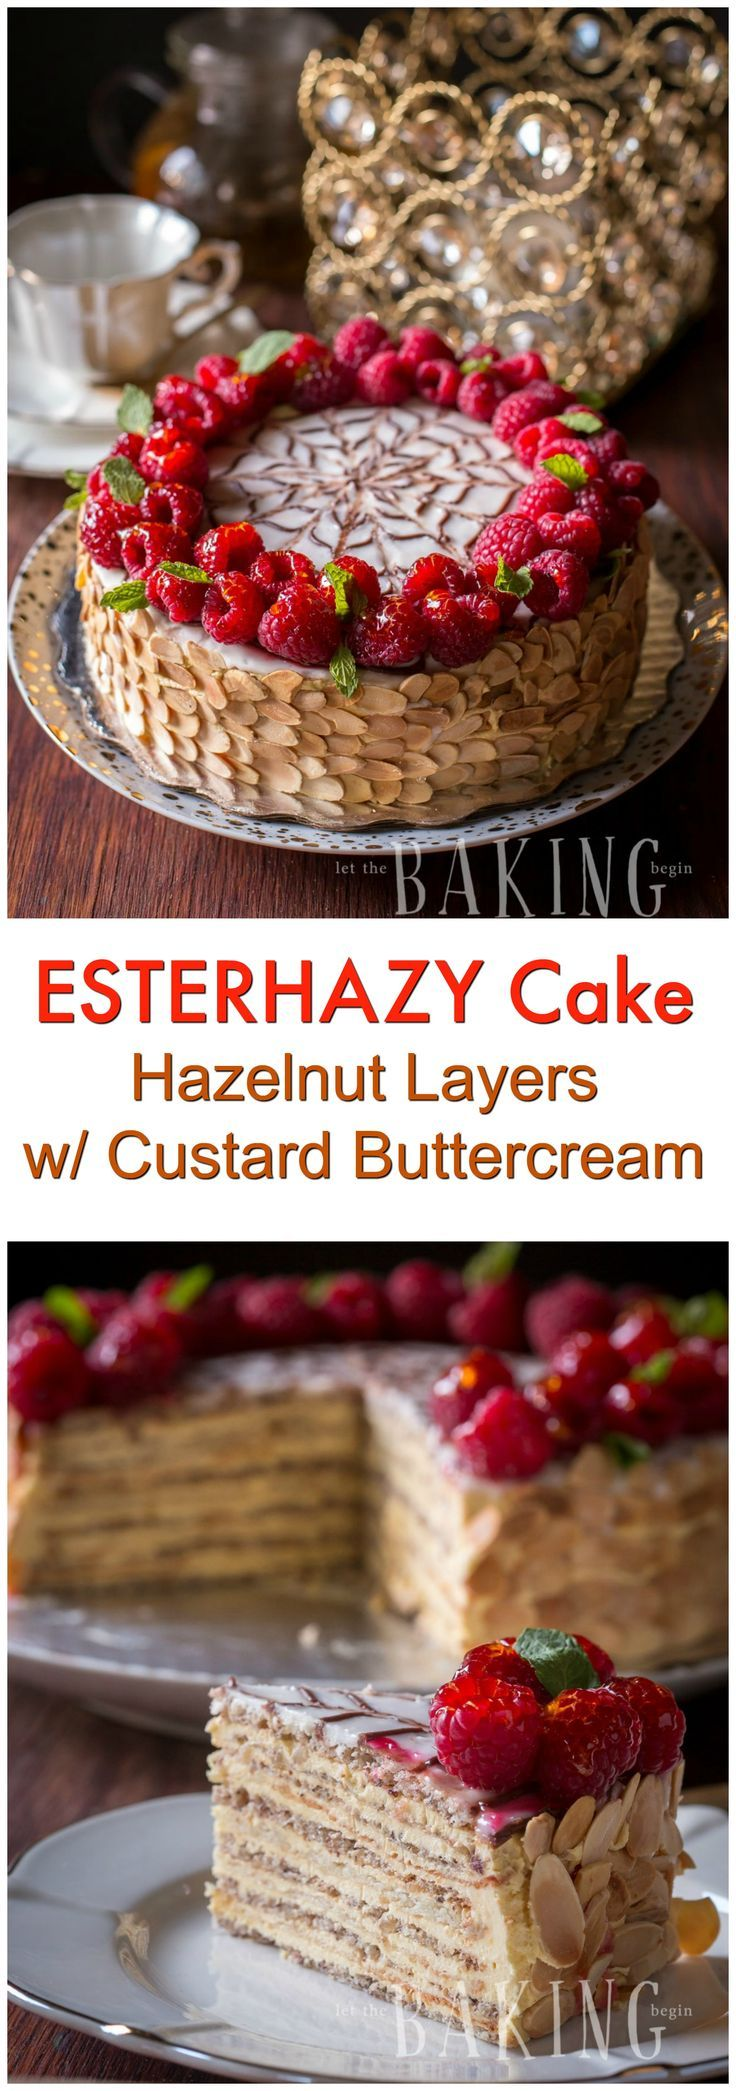 Esterhazy - Exceptional Hungarian cake made of Hazelnut Meringue and rich Custard Buttercream . This dessert recipe will leave your guests speechless! | By Let the Baking Begin!